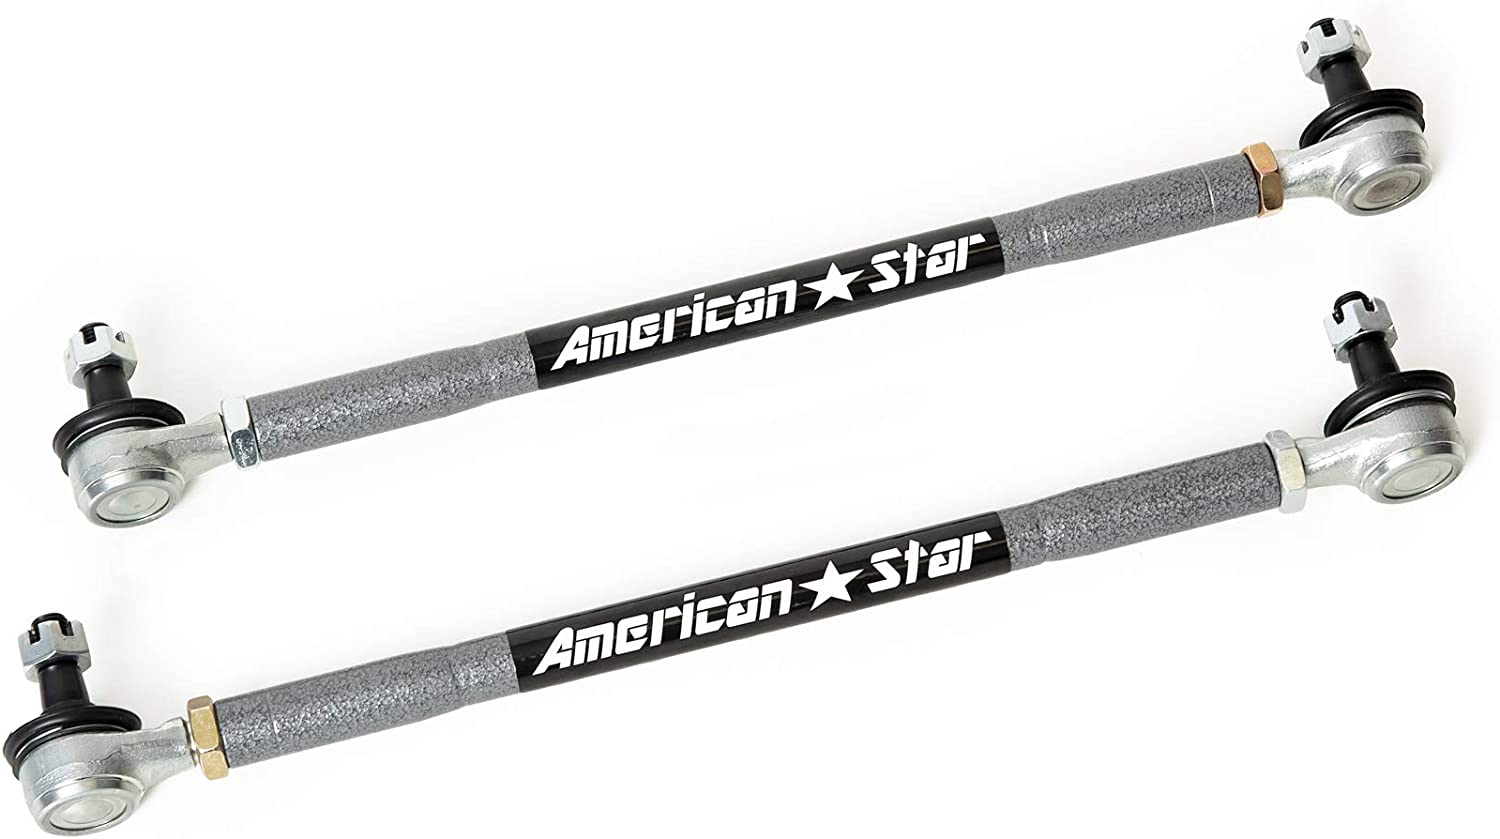 American Star Yamaha YFZ 450 04-09 MX PRO Tie Rods And Ends